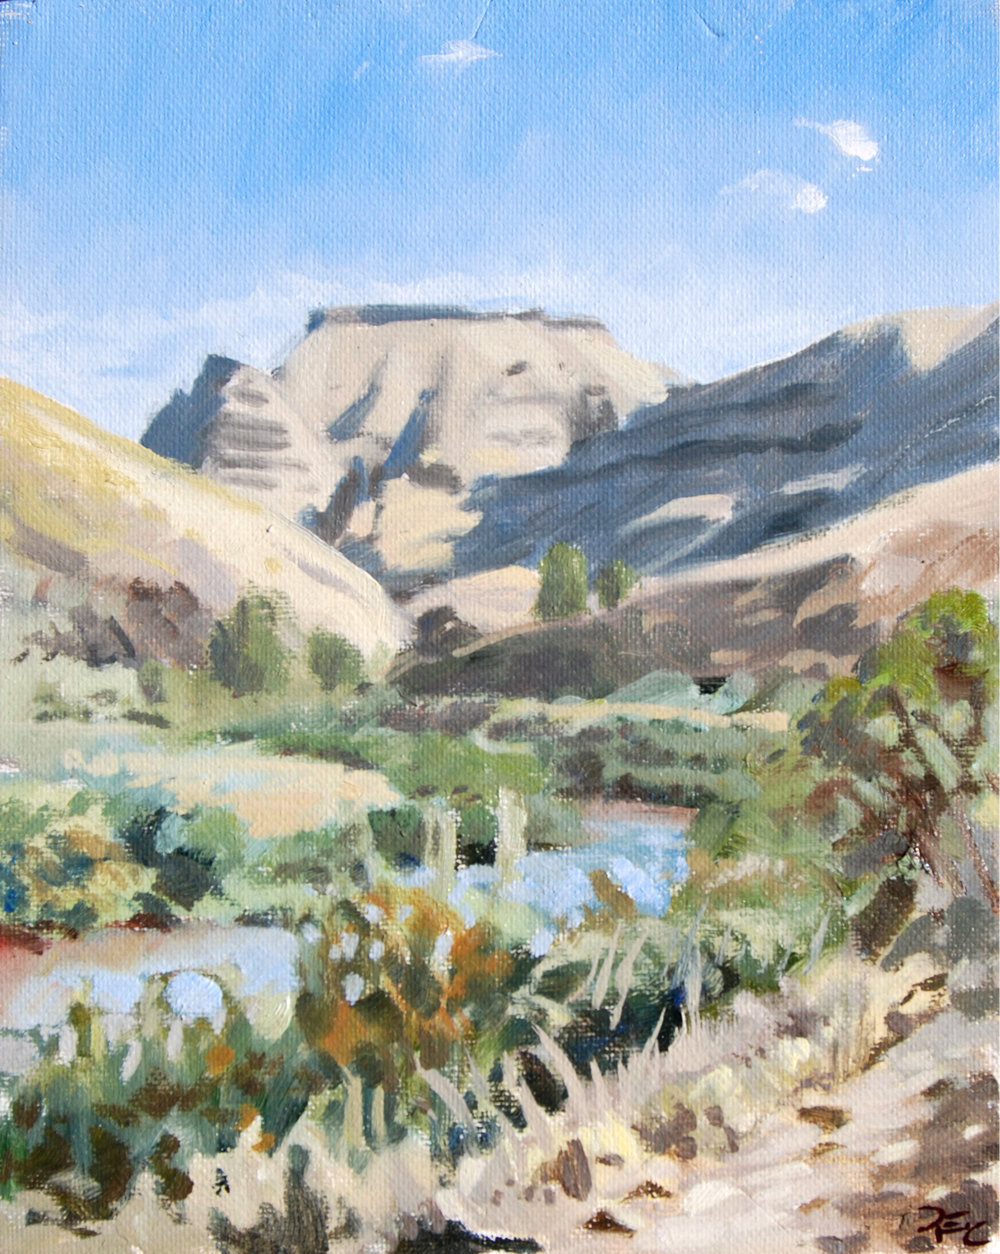 She-Who-Watches from John Day River,  10 x 8 in.  Oil on canvas. Private Collection. (2016)